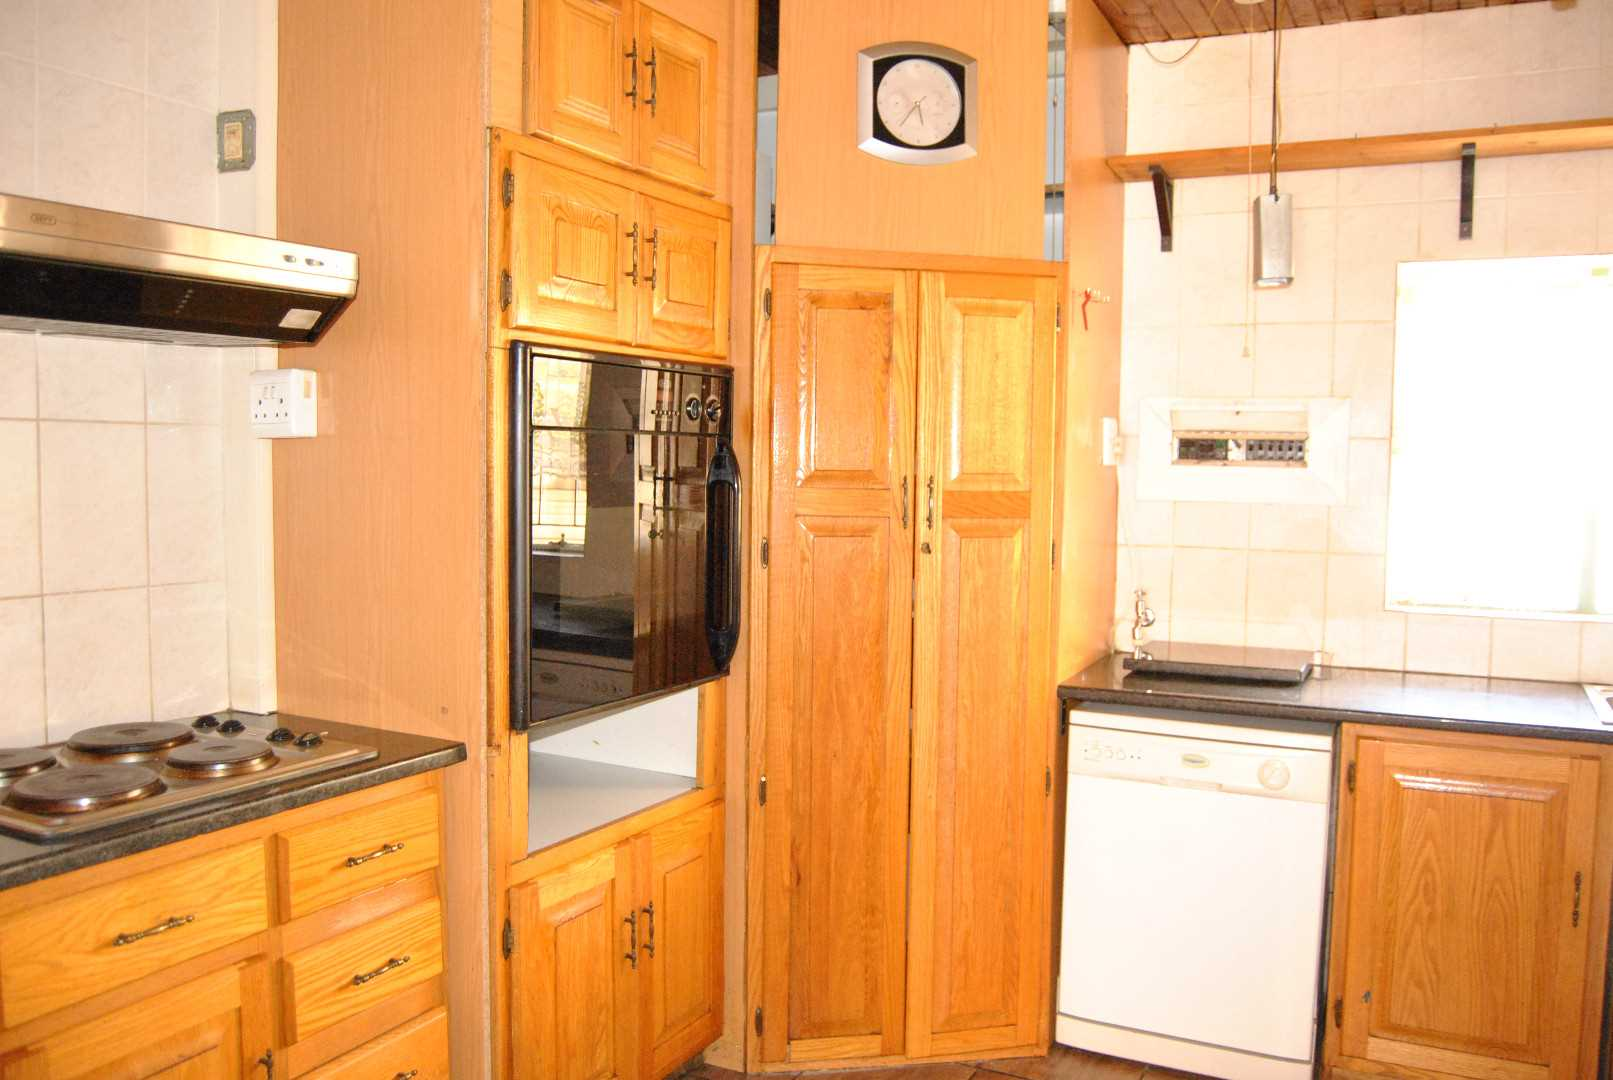 kitchen with eye level oven